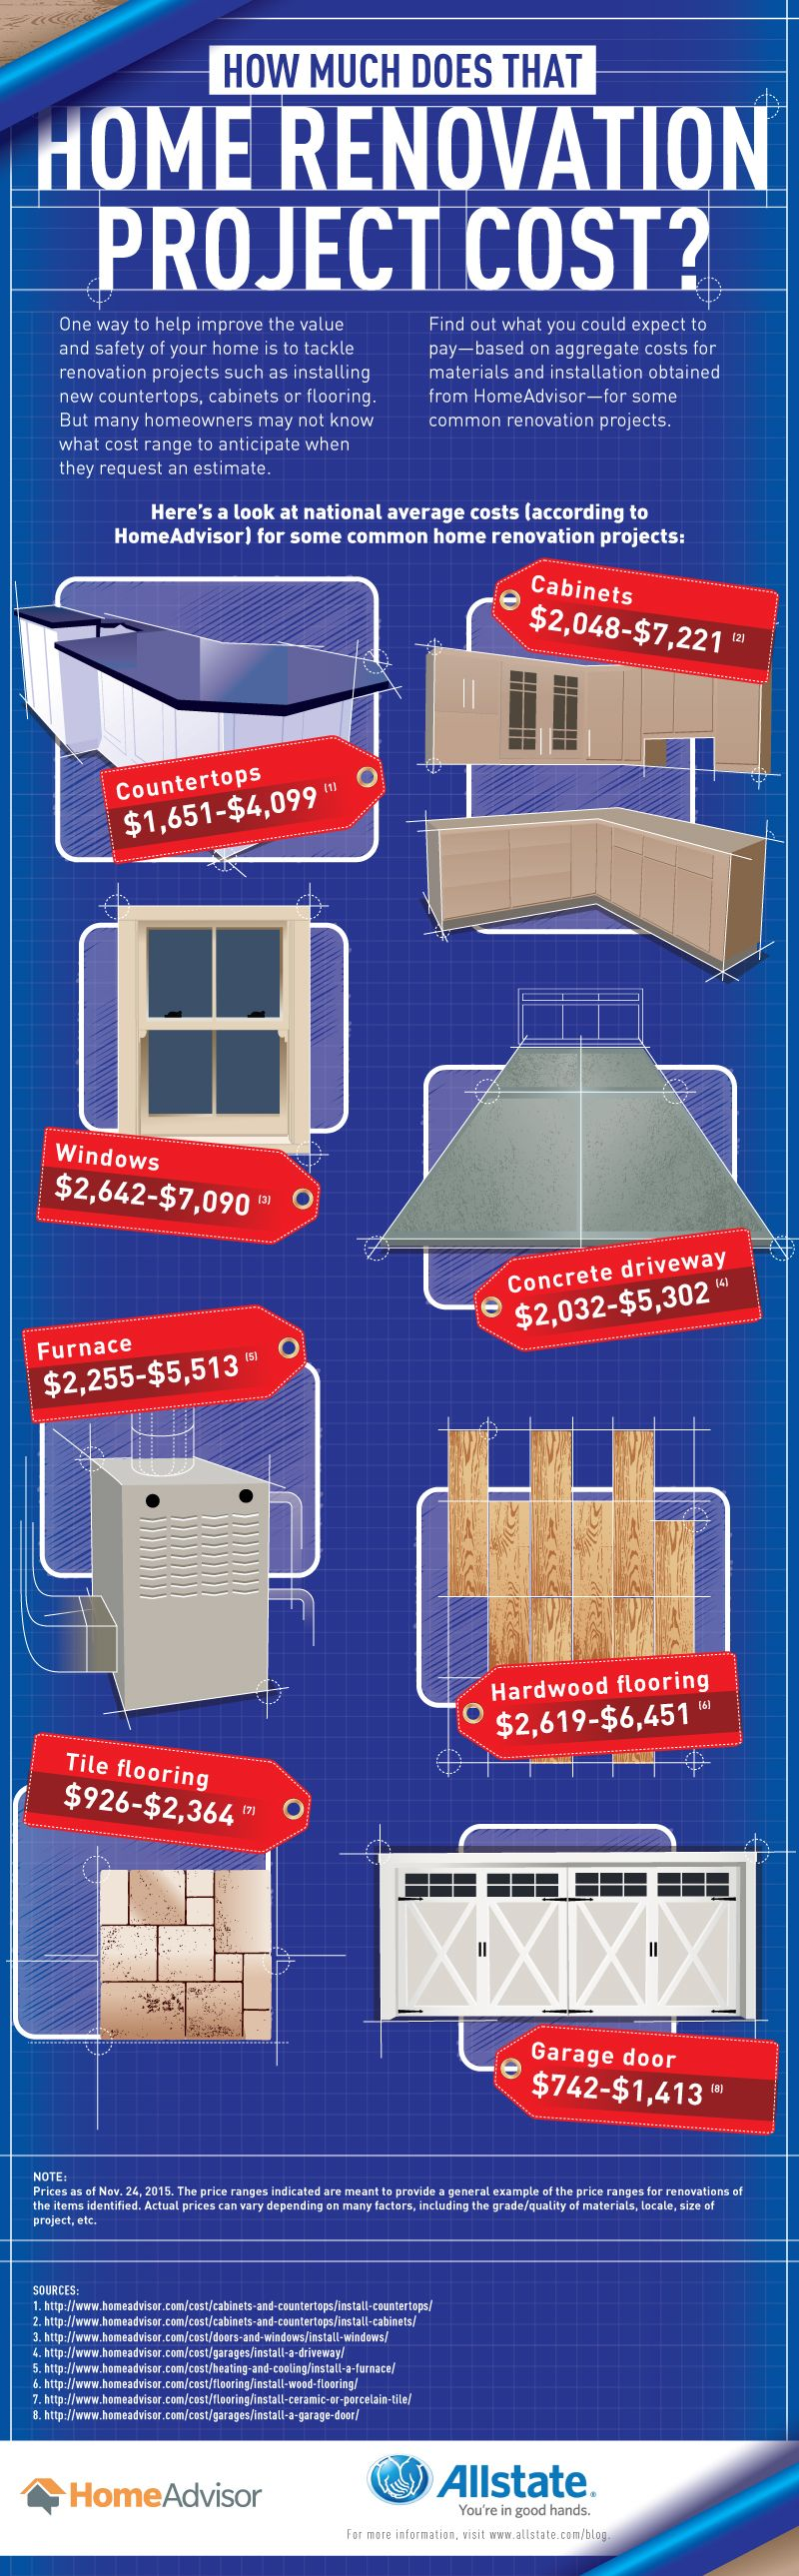 How Much Does That Home Renovation Project Cost Infographic